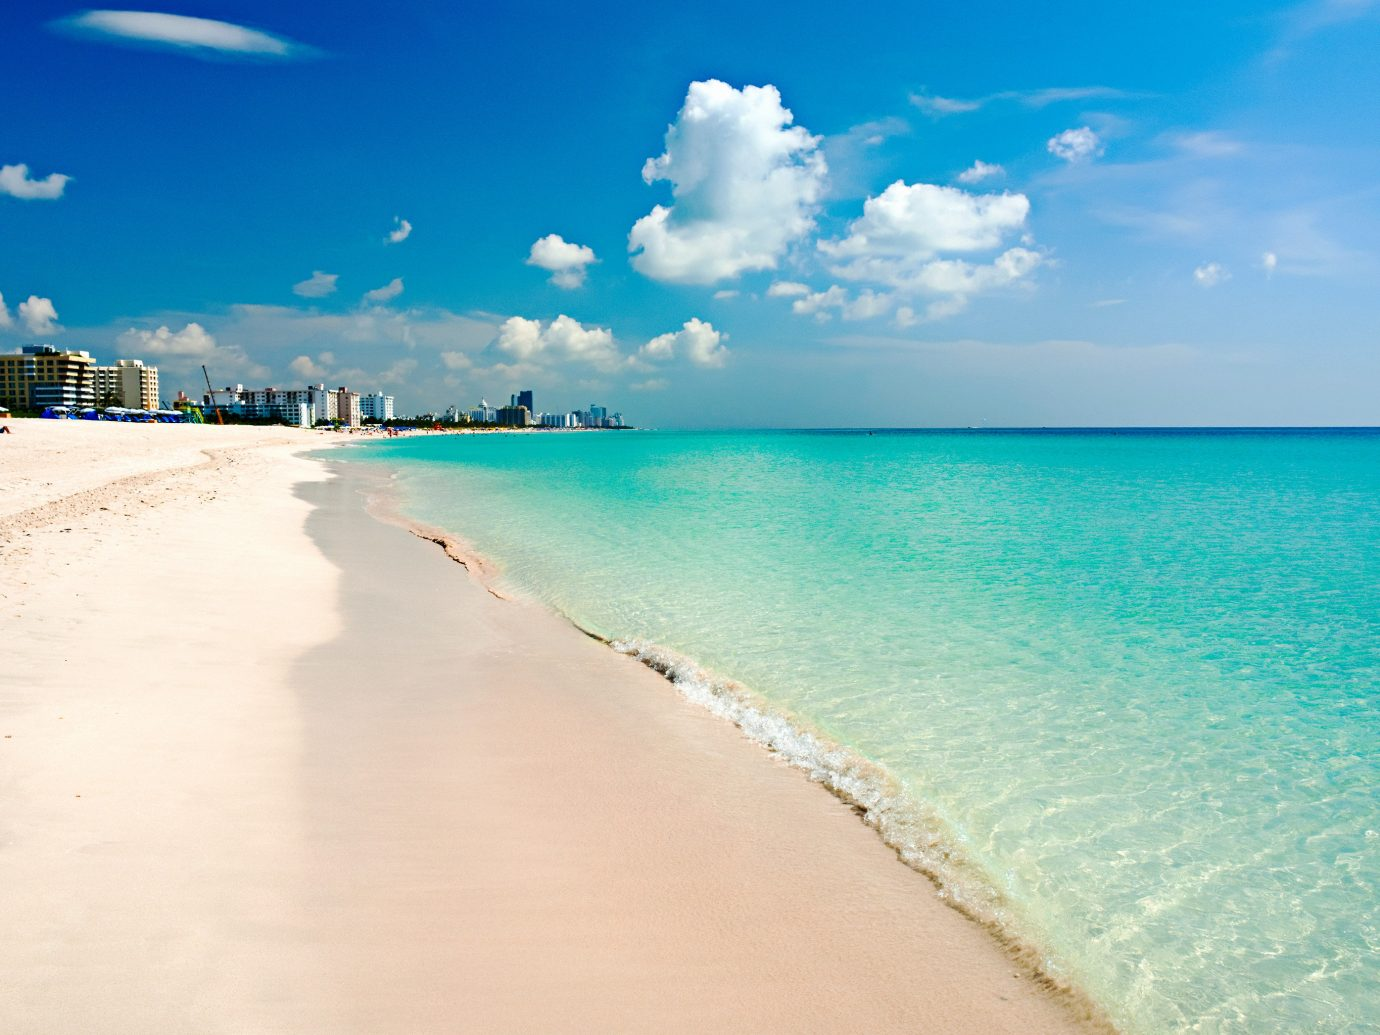 Beach Beachfront Hotels Ocean Outdoors Waterfront sky water outdoor ground Nature Sea shore body of water horizon sand vacation caribbean wave Coast wind wave cloud sunlight sandy bay day